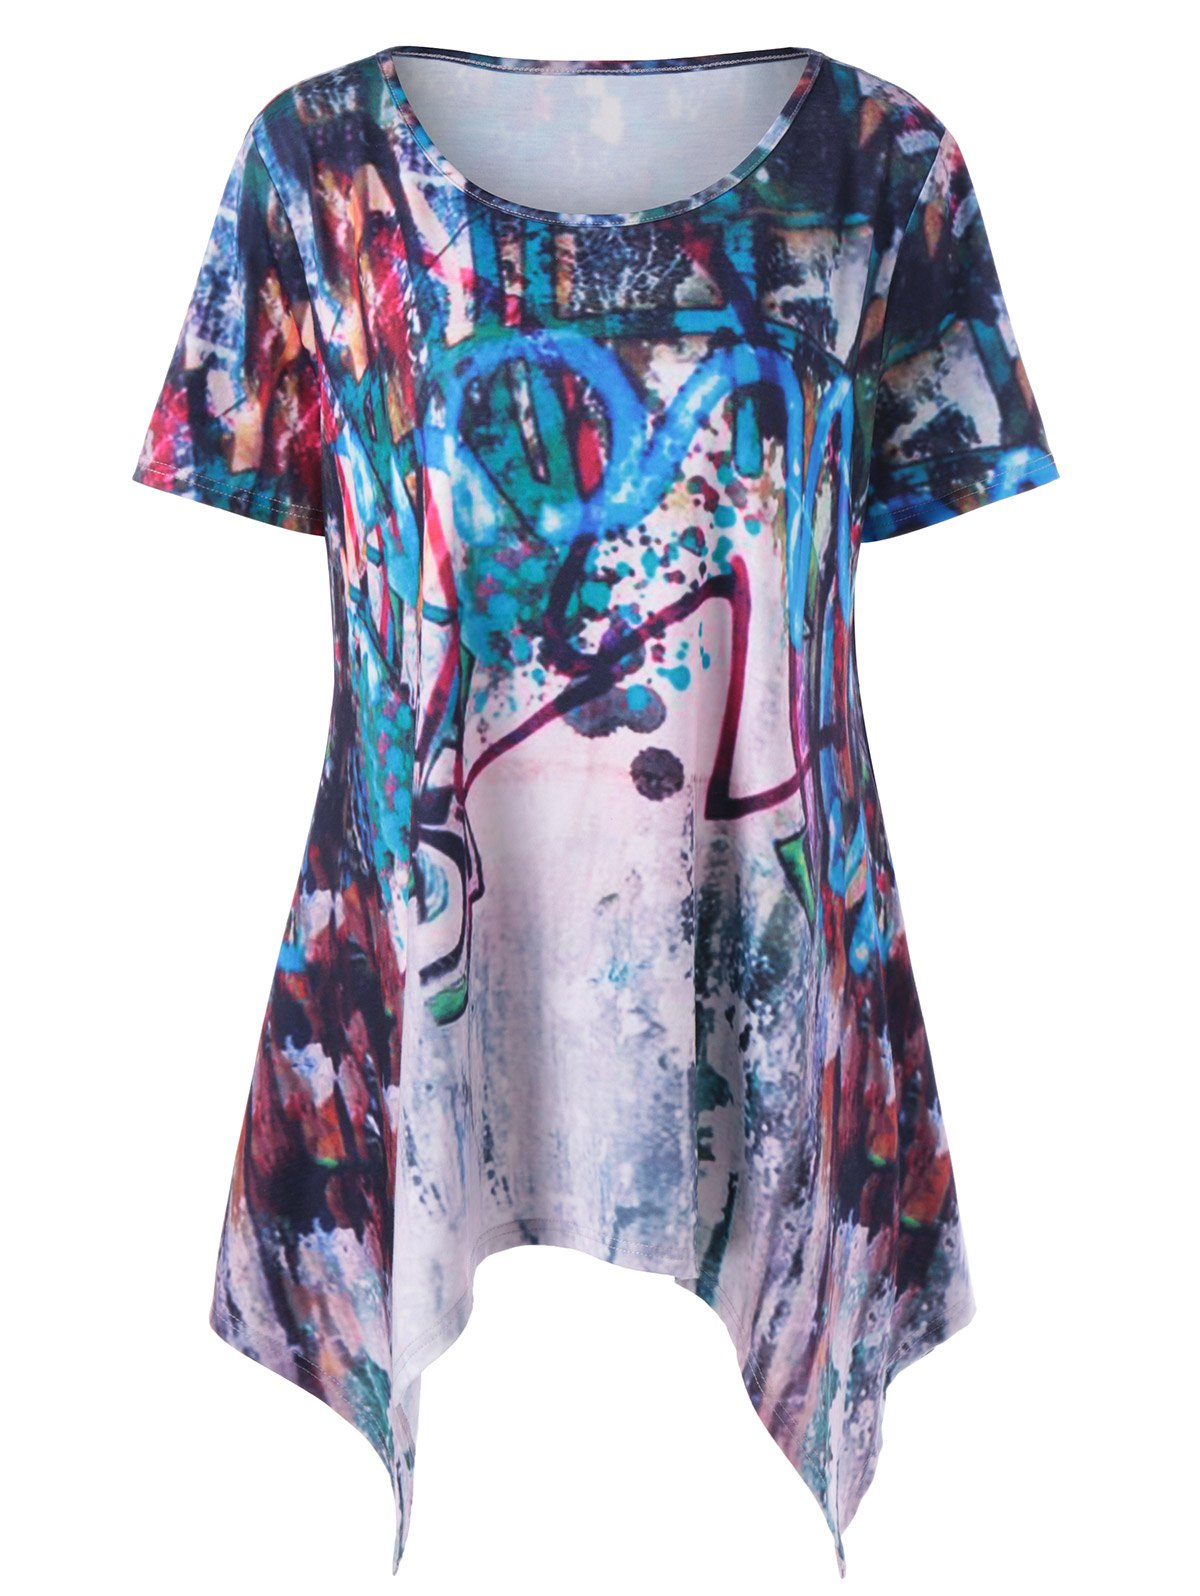 Plus Size Scrawl Print Tunic Top vine print tunic top